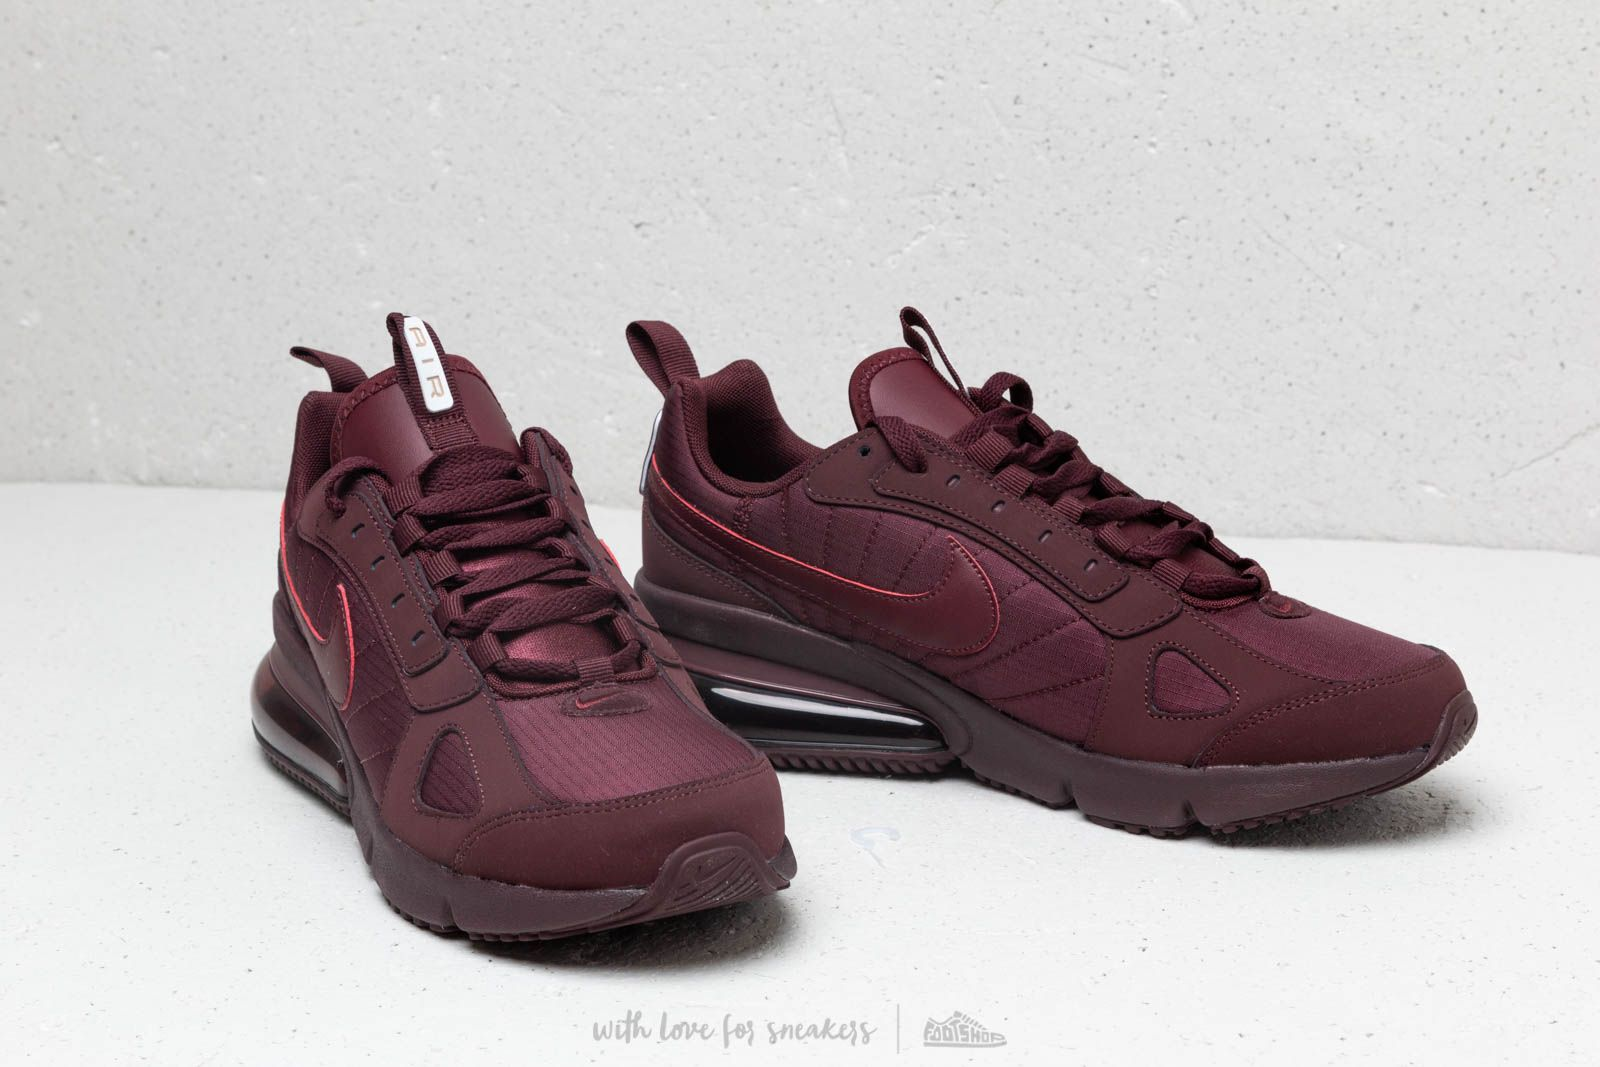 Nike Air Max 270 Futura Burgundy Crush Burgundy Crush | Footshop